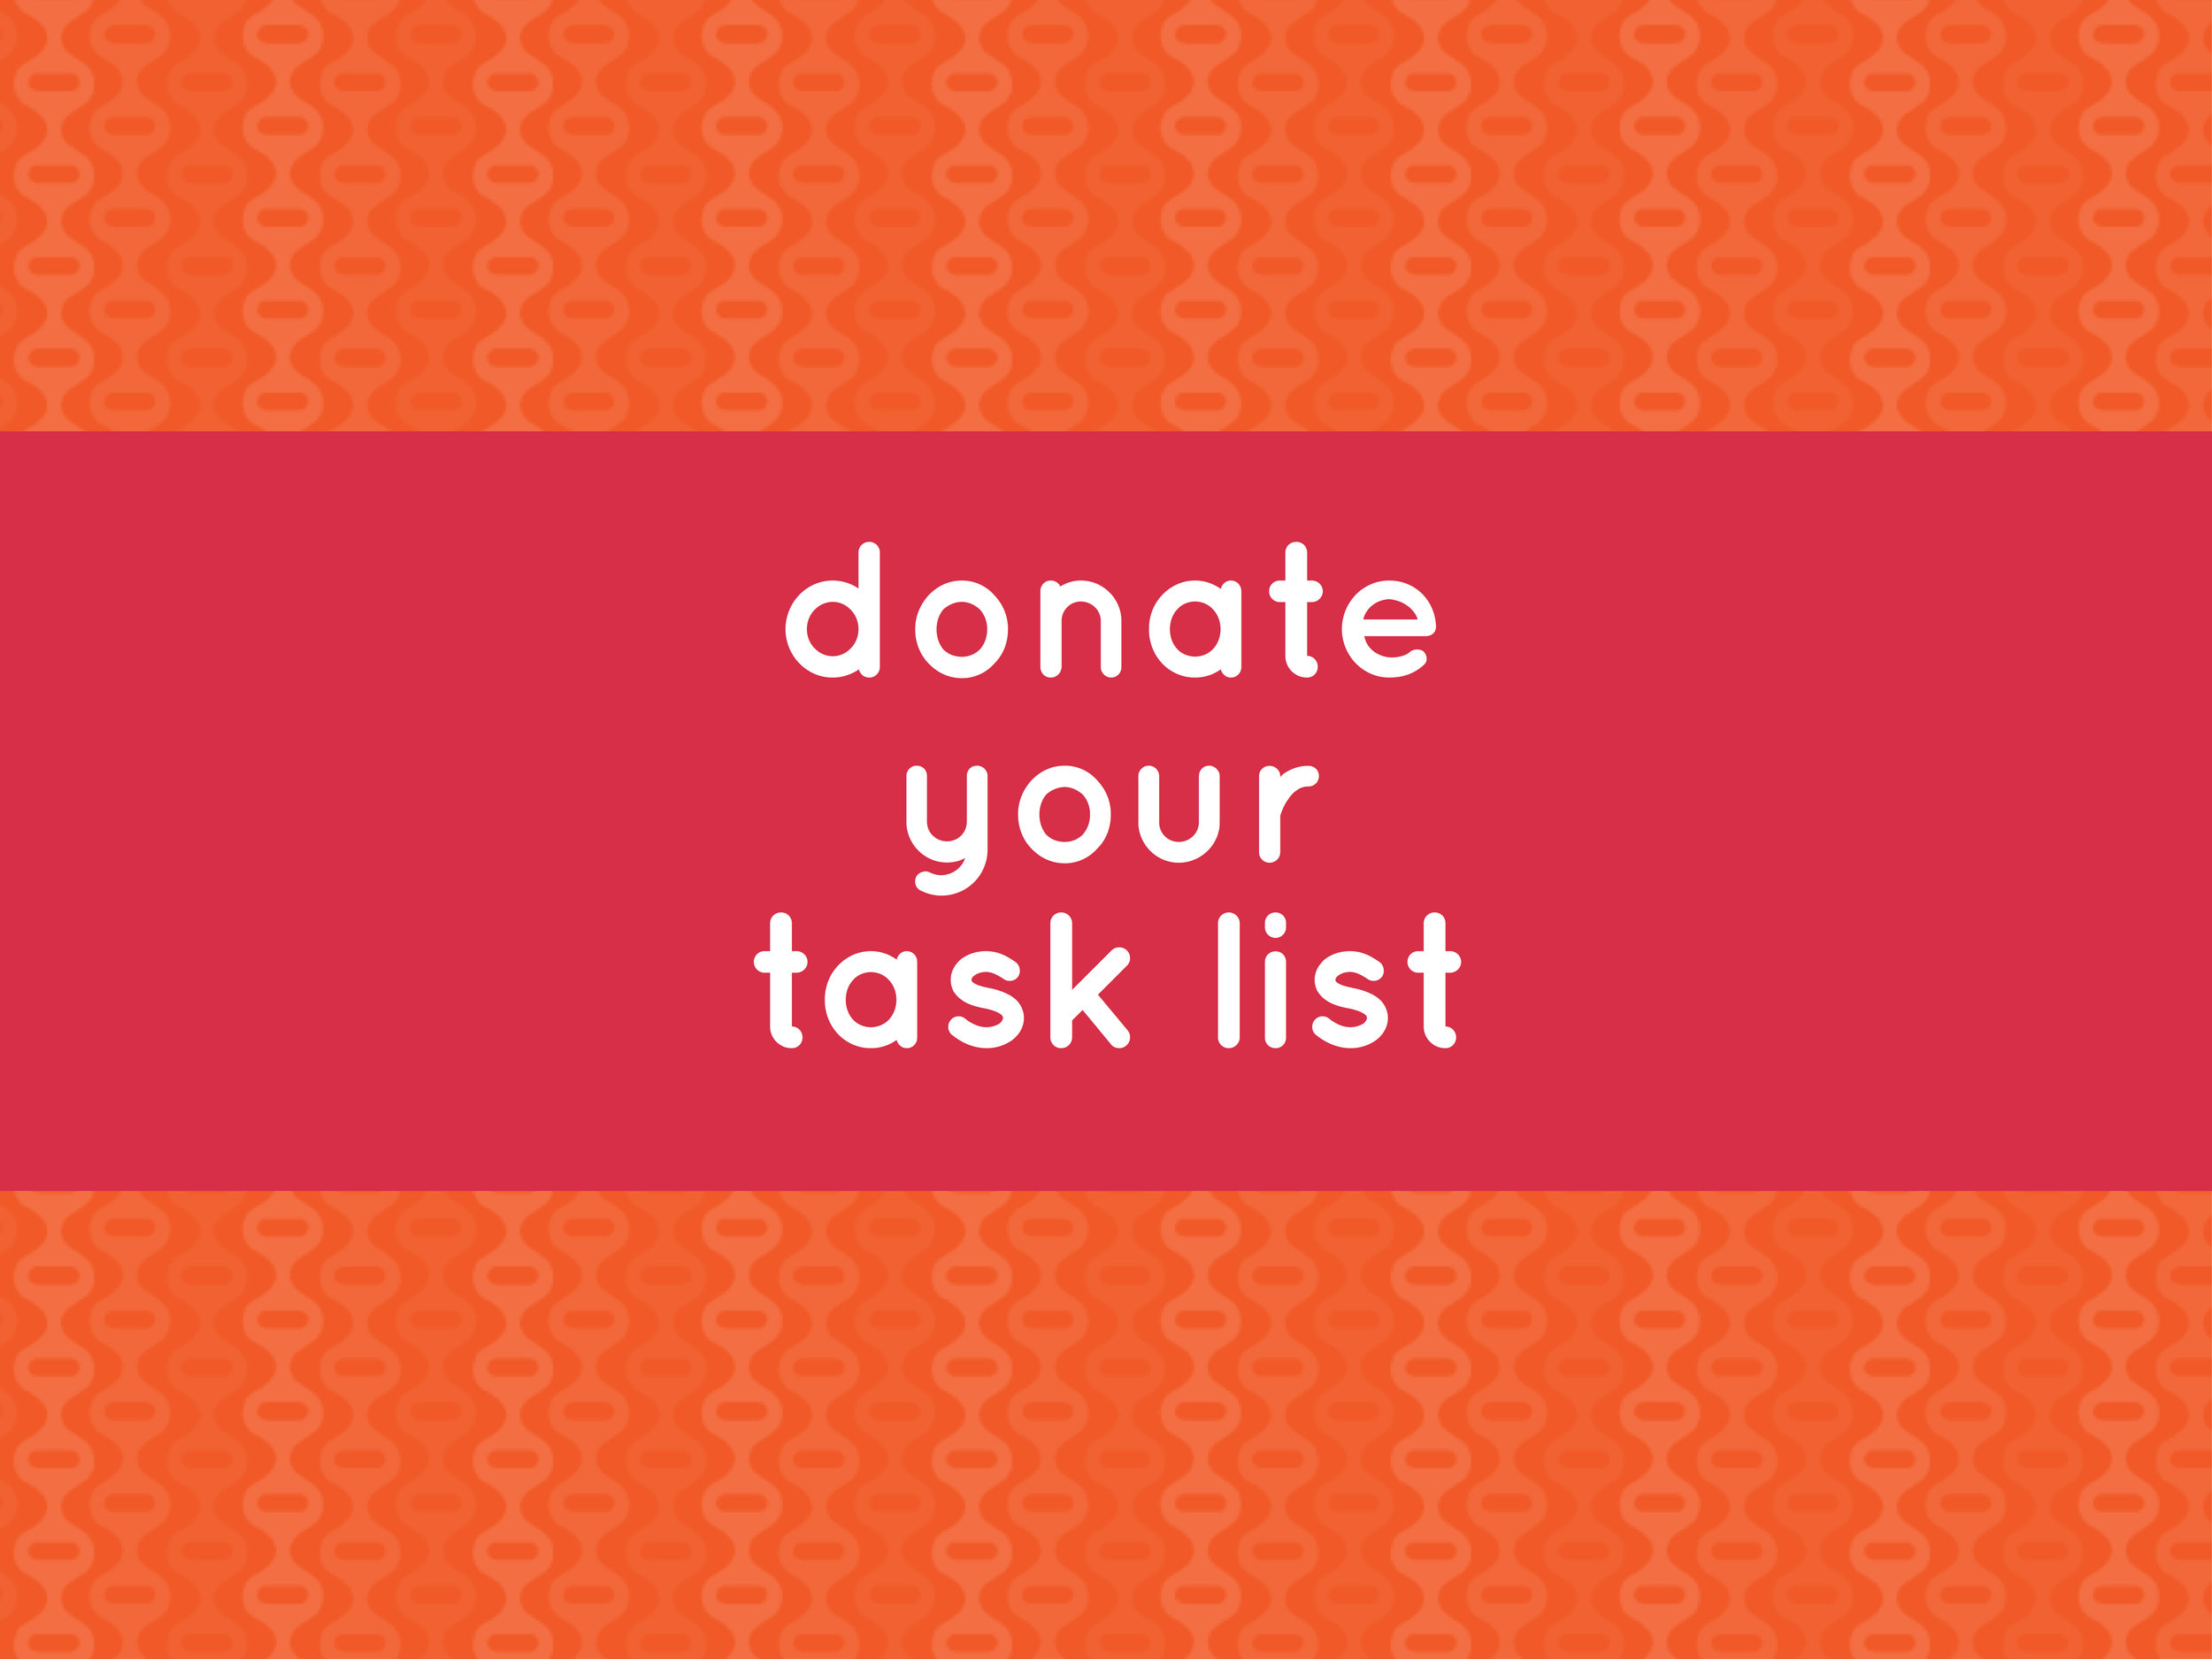 home tile donate your task list.jpg